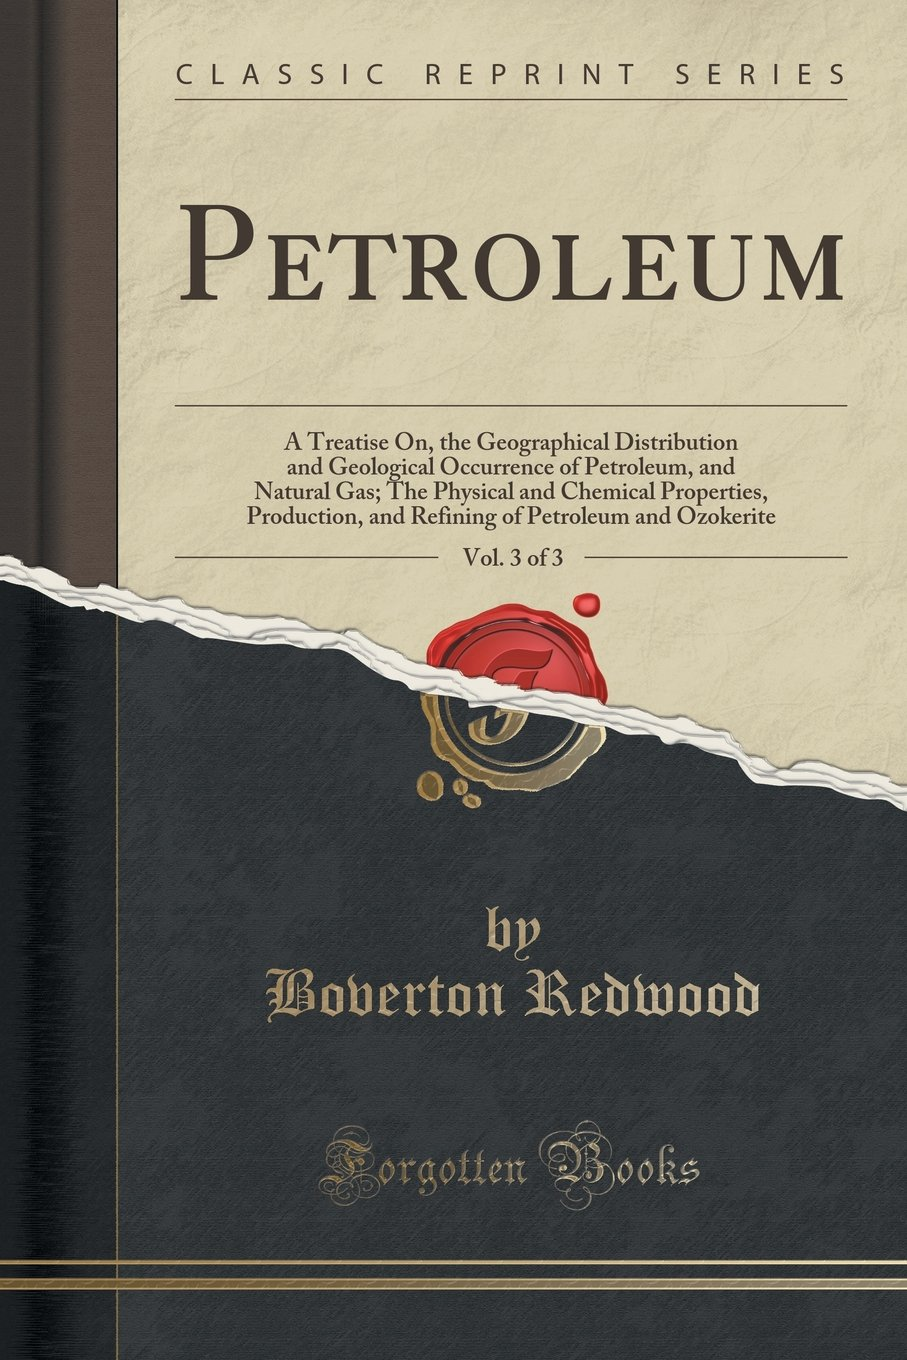 Download Petroleum, Vol. 3 of 3: A Treatise On, the Geographical Distribution and Geological Occurrence of Petroleum, and Natural Gas; The Physical and ... of Petroleum and Ozokerite (Classic Reprint) PDF